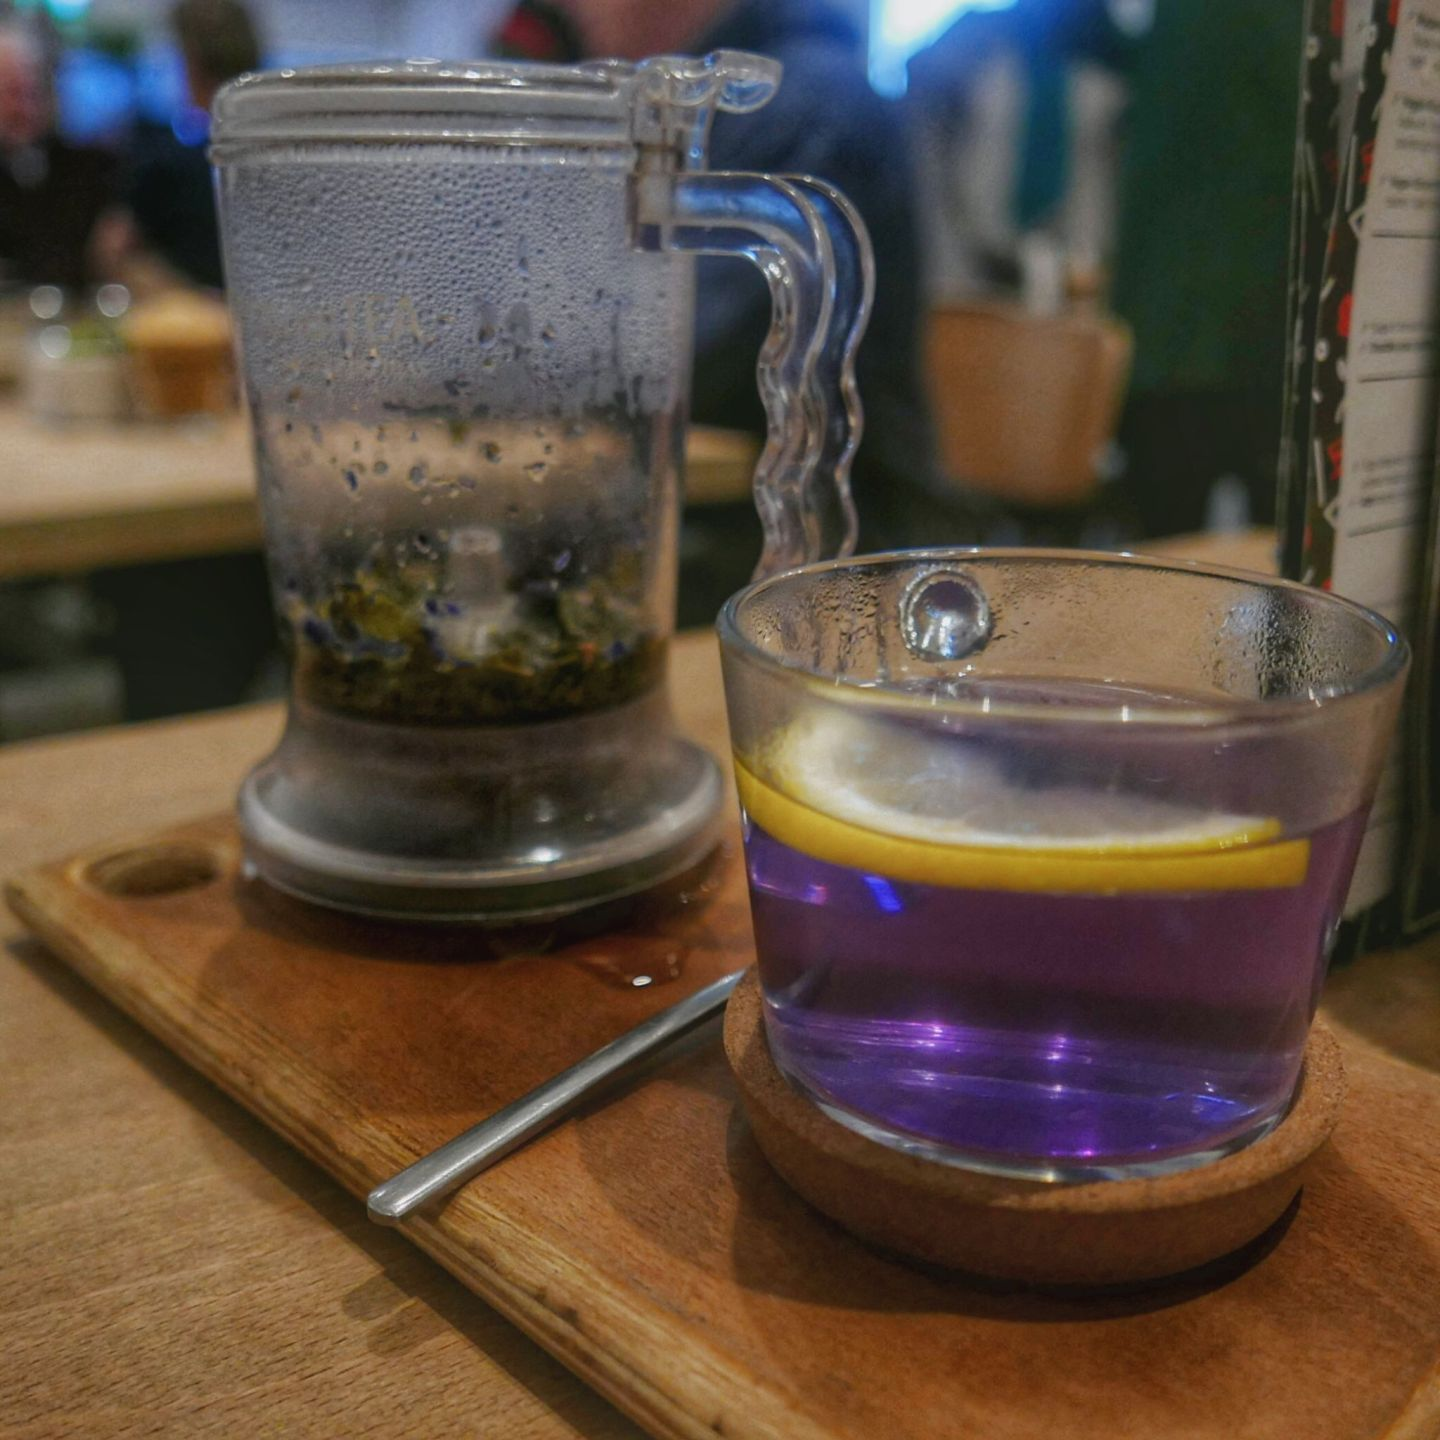 Teapot and purple tea at Waylands Yard Birmingham. Planning on eating out in Birmingham? A Brummie Home and Abroad decided to spend January trying out new breakfast, lunch and dinner spots